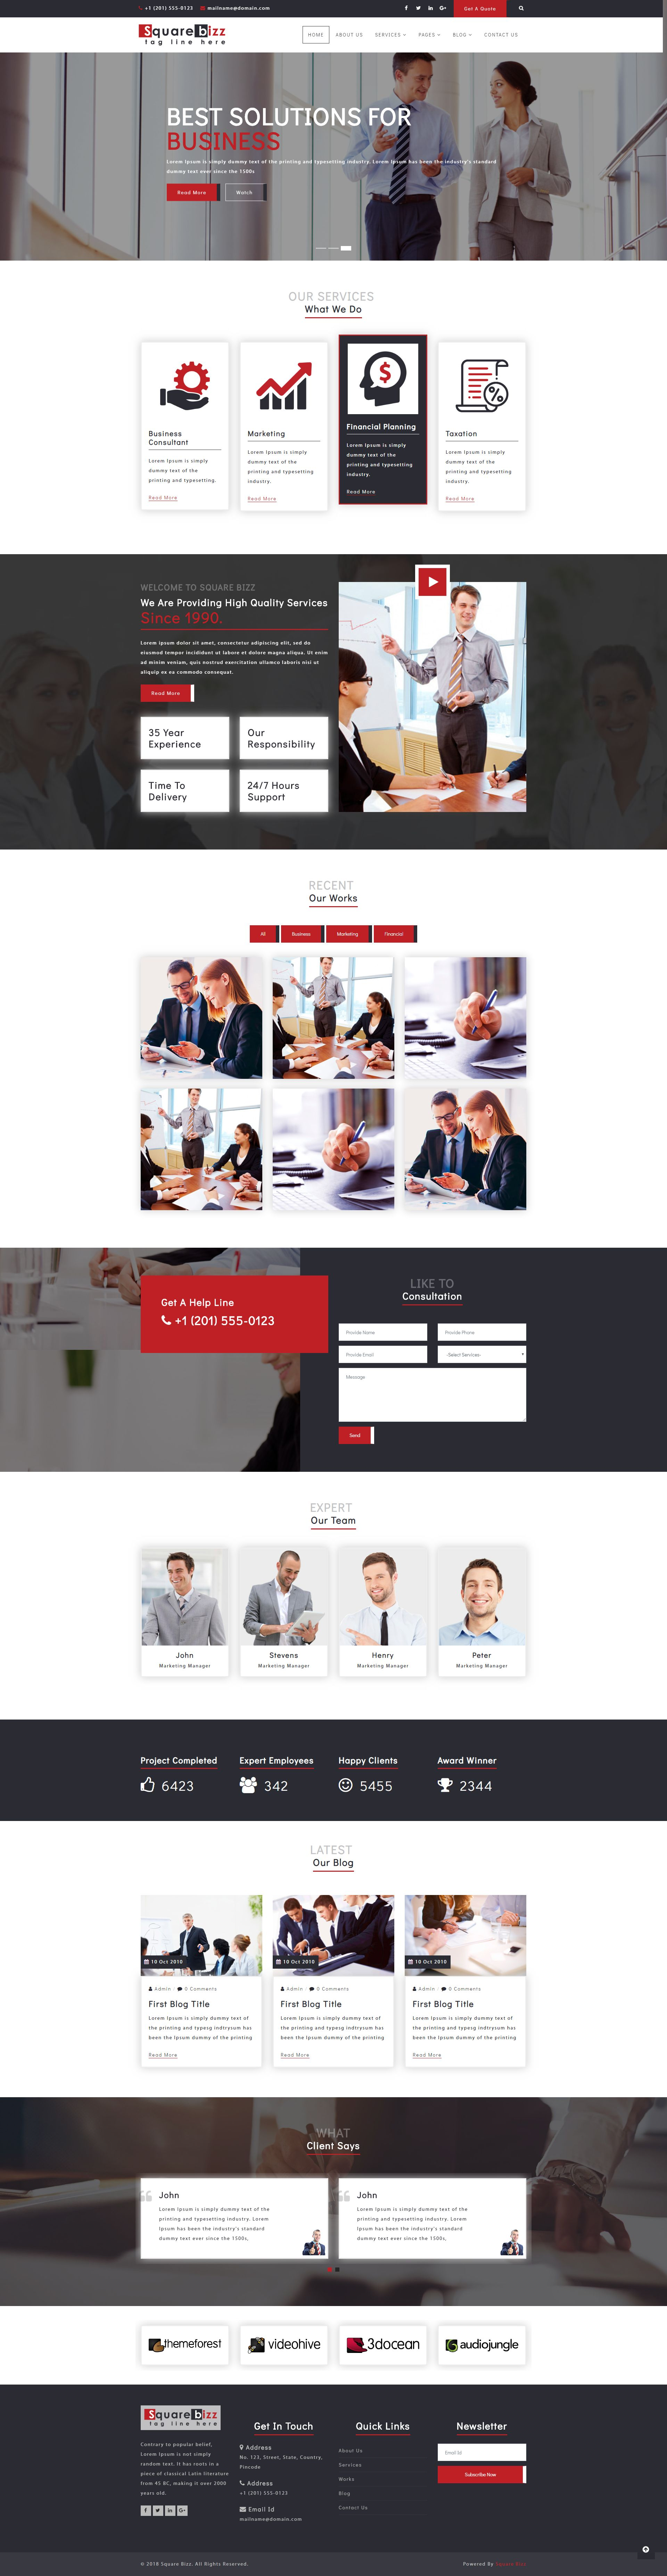 Square Bizz - Consulting and Corporate Template Screenshot 2